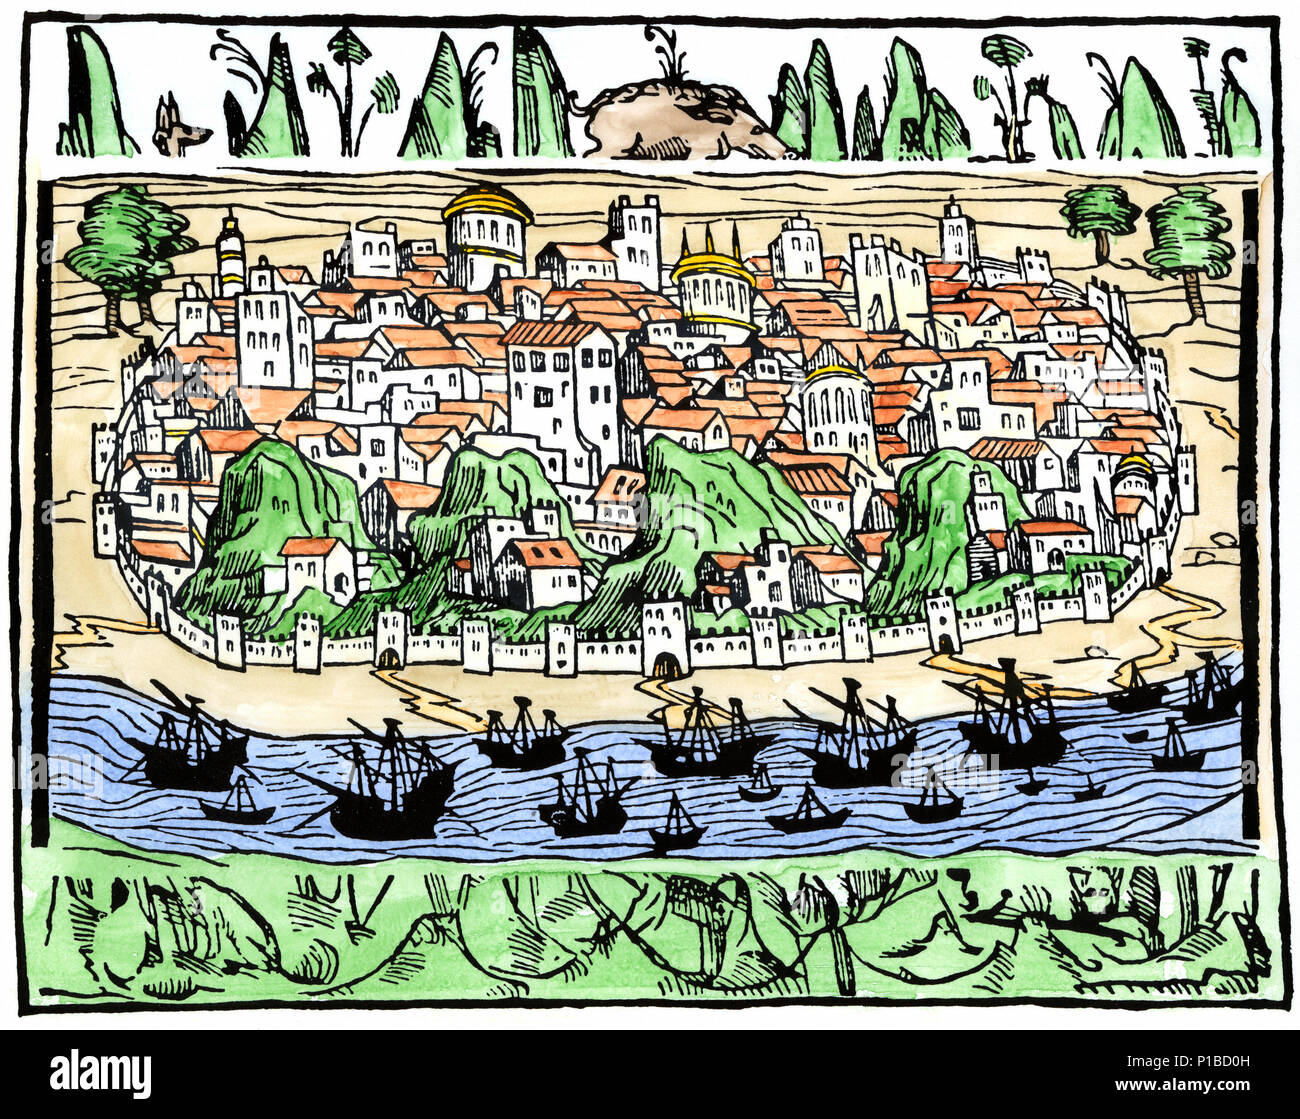 Lisbon, Portugal, in the Age of Discovery. Hand-colored woodcut - Stock Image